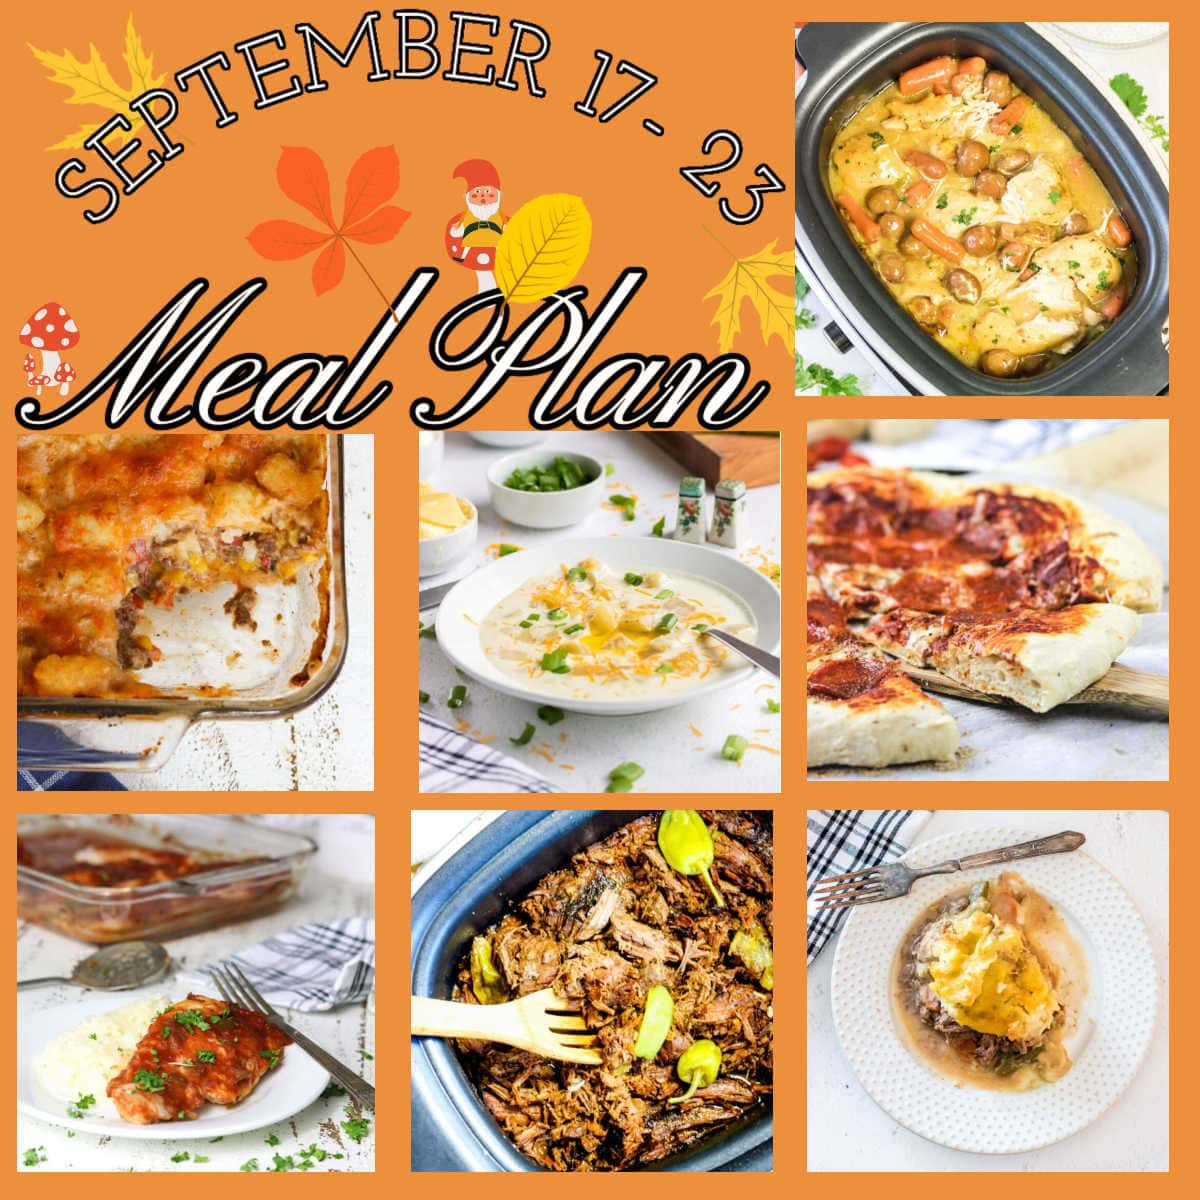 Collage for September 17-23 meal plan.